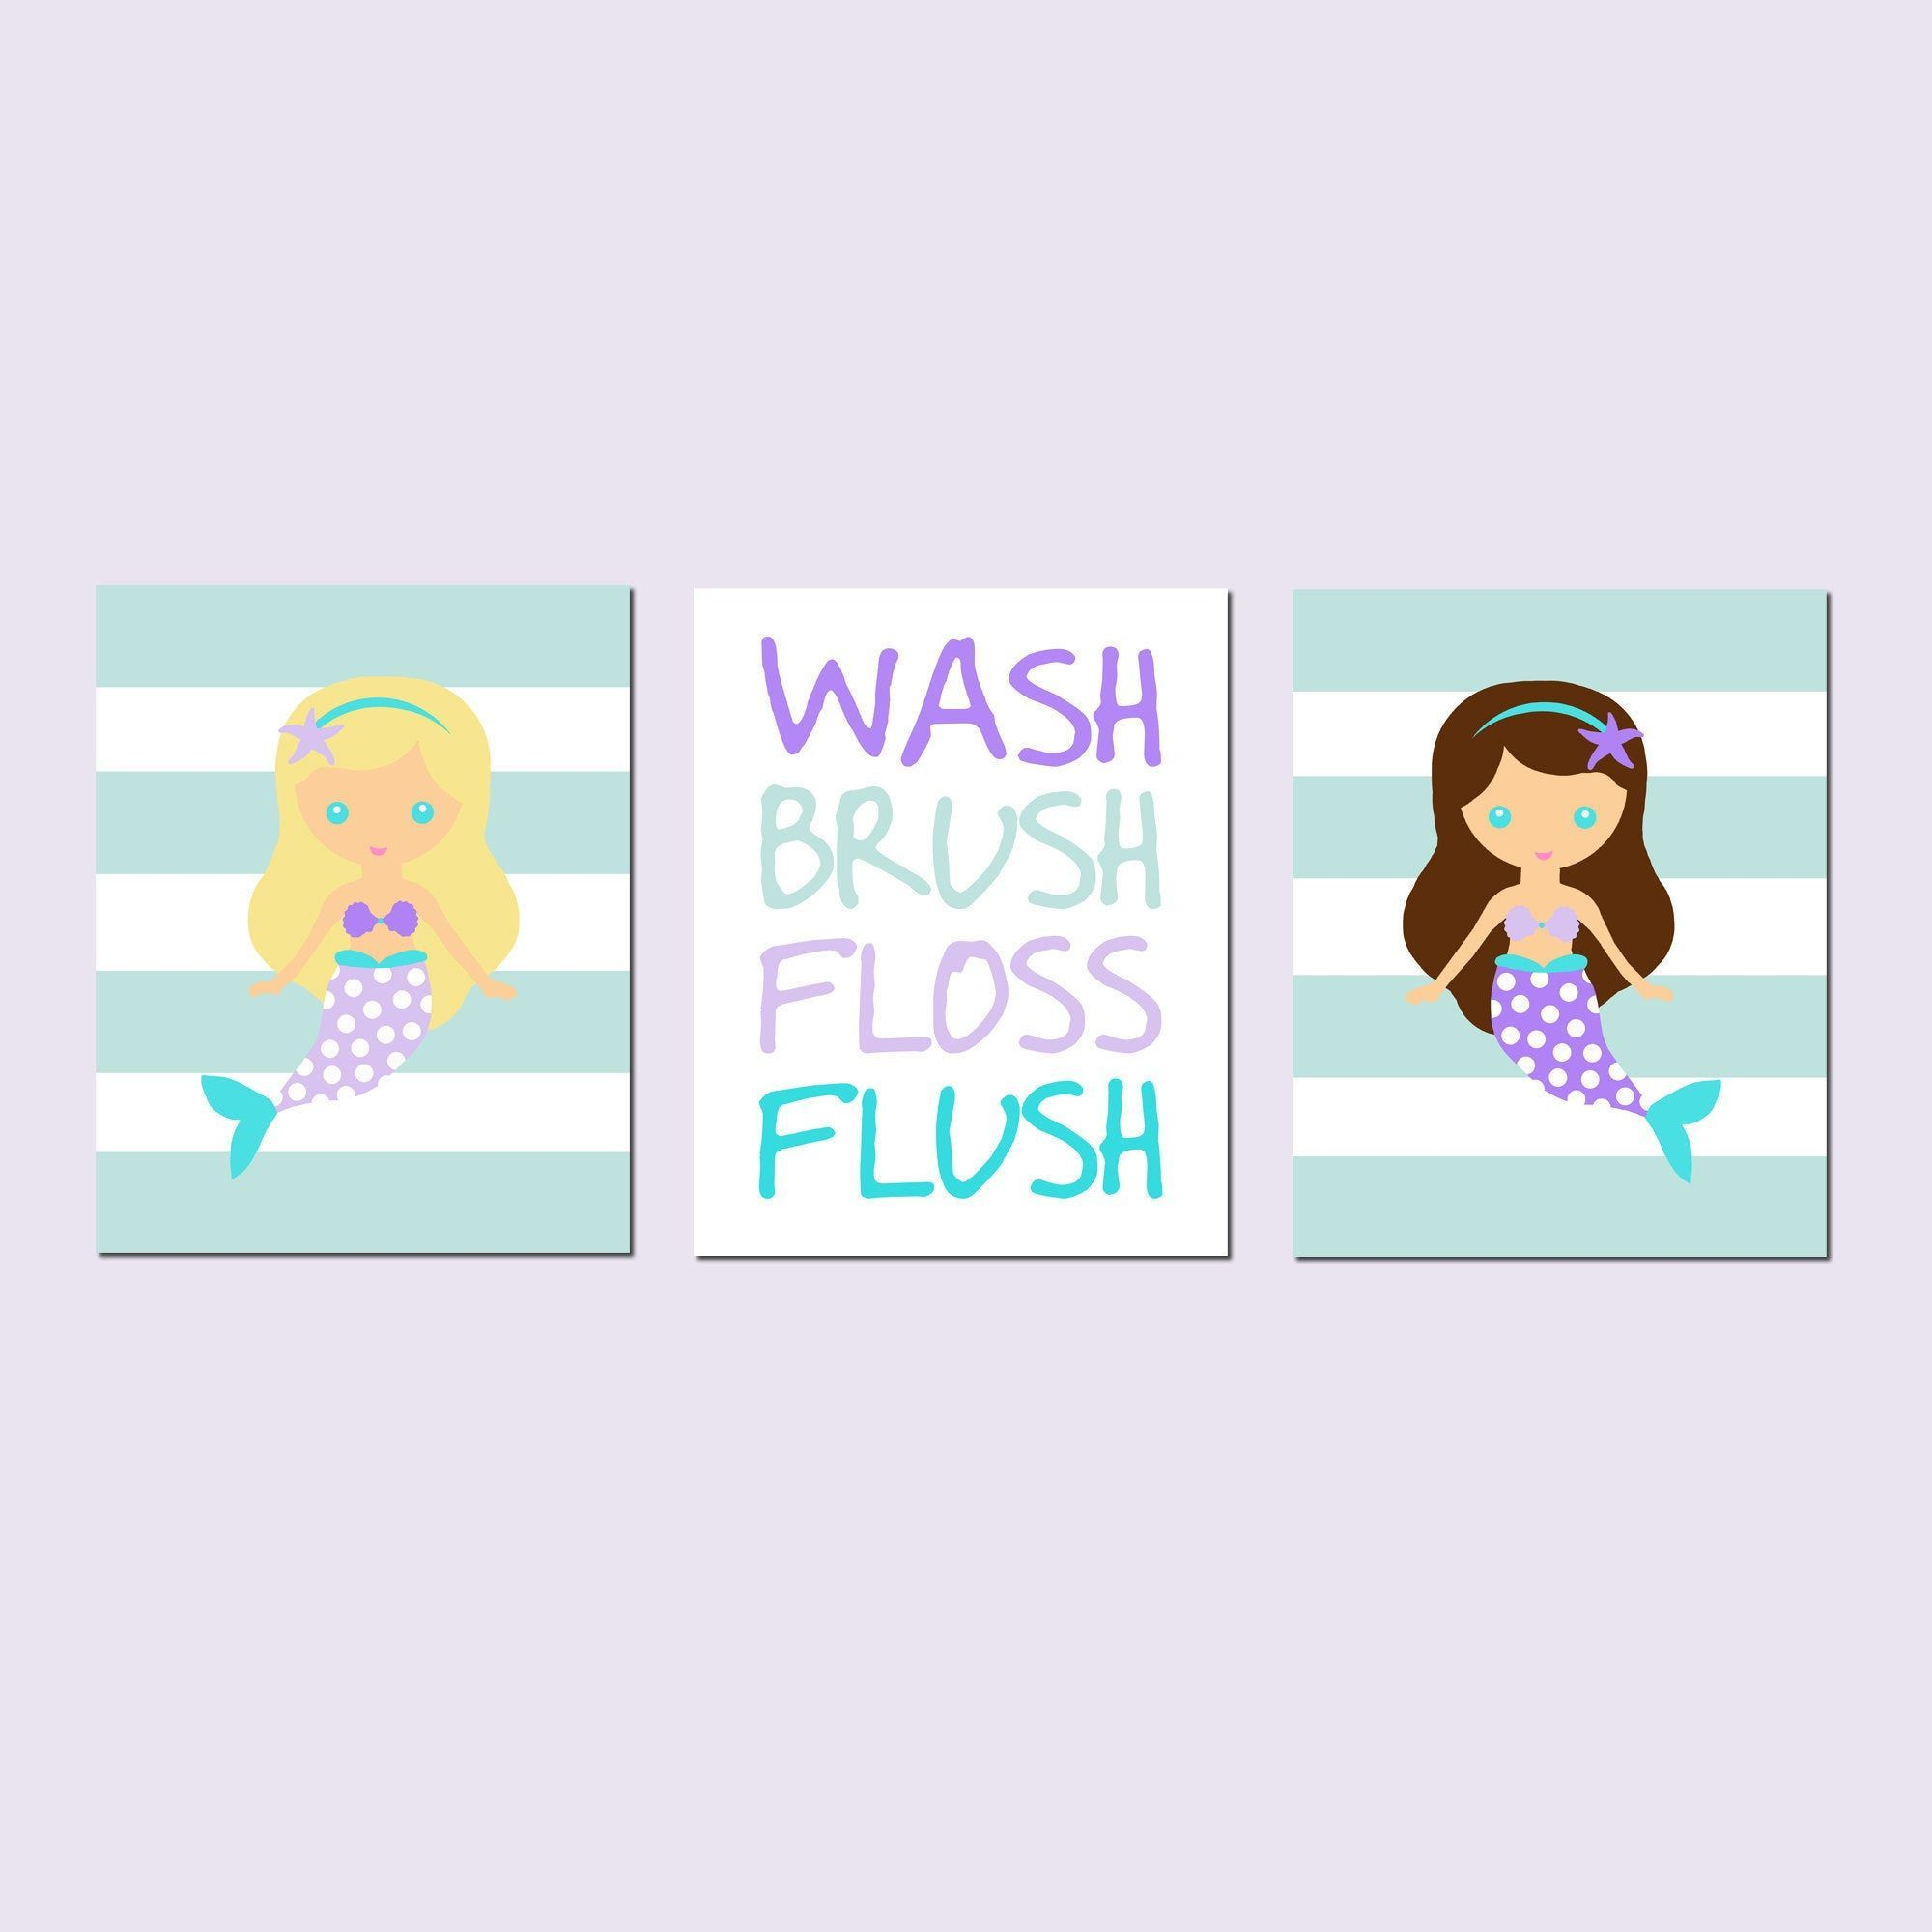 Mermaid Bathroom Decor Mermaid Bathroom Art Kids Bathroom Art - Set of 3 Mermaid Bathroom Prints Wash Brush Flush Floss - CHOOSE YOUR COLORS #mermaidbathroomdecor Mermaid Bathroom Decor Mermaid Bathroom Art Kids Bathroom Art - Set of 3 Mermaid Bathroom Prints Wash Brush Flush Floss - CHOOSE YOUR COLORS #mermaidbathroomdecor